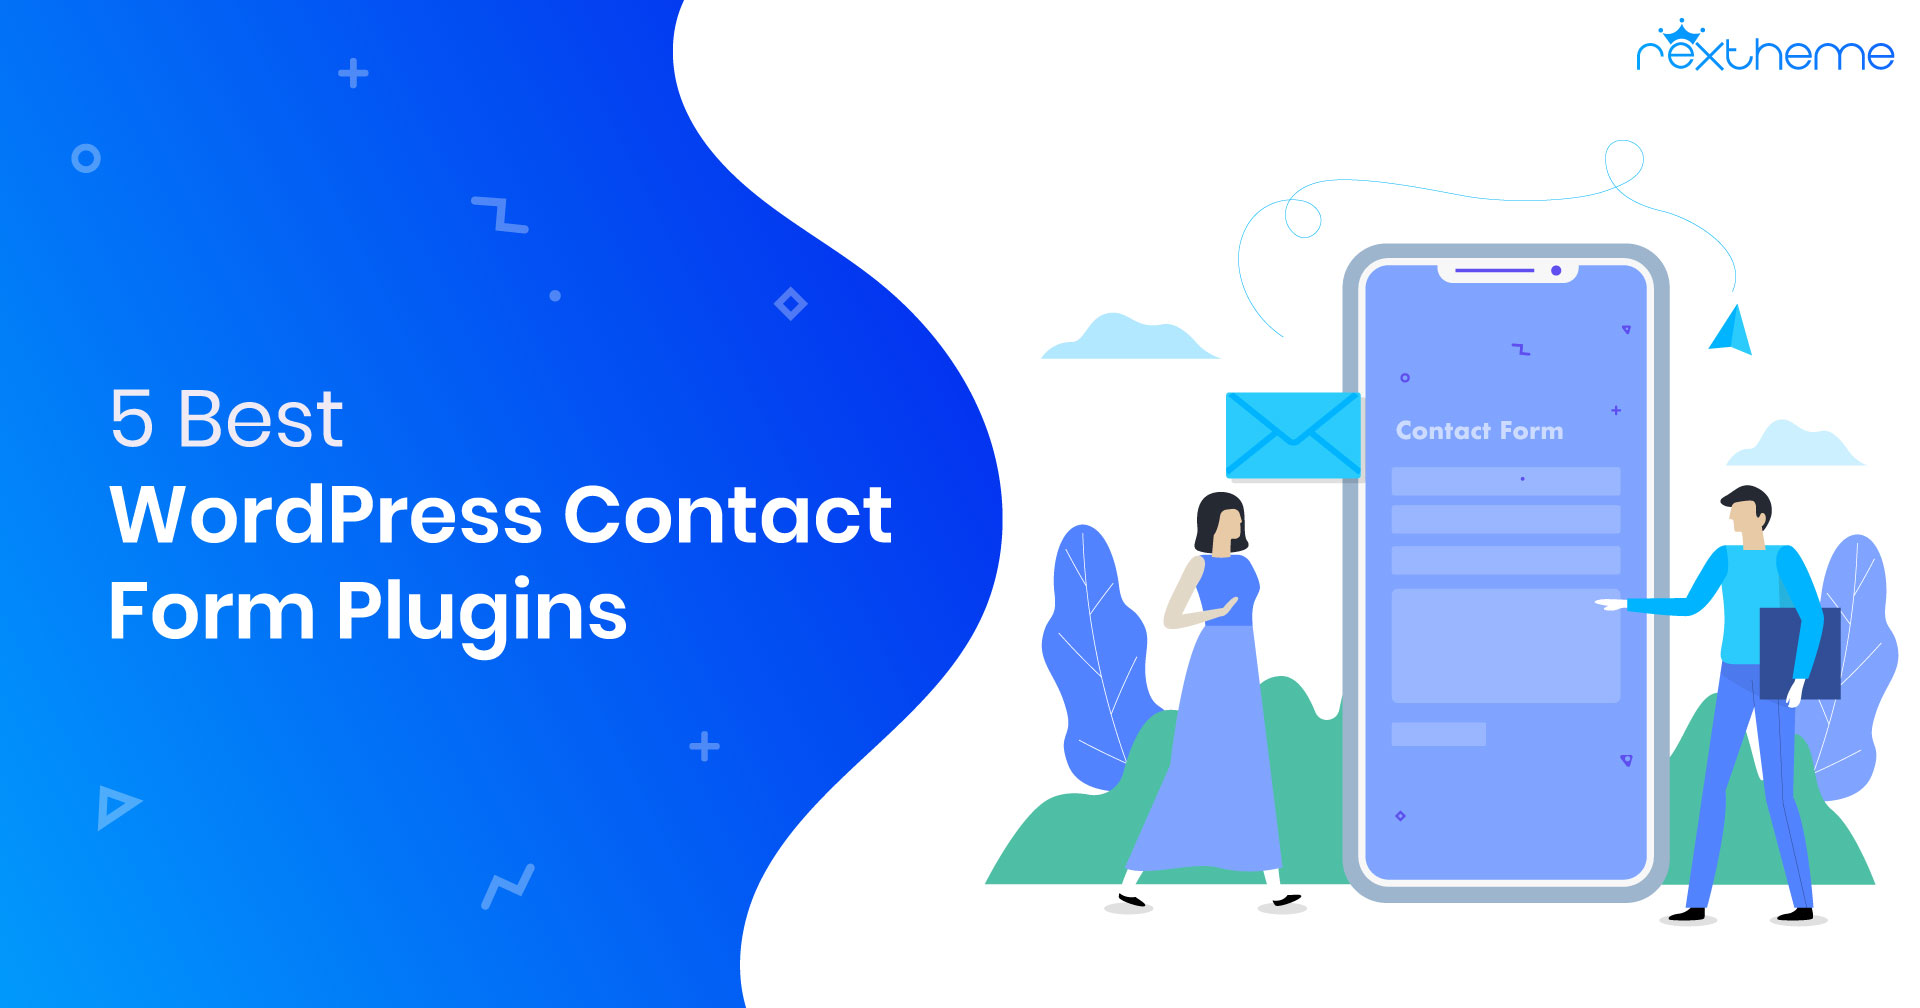 5 Best WordPress Contact Form Plugins [2019]